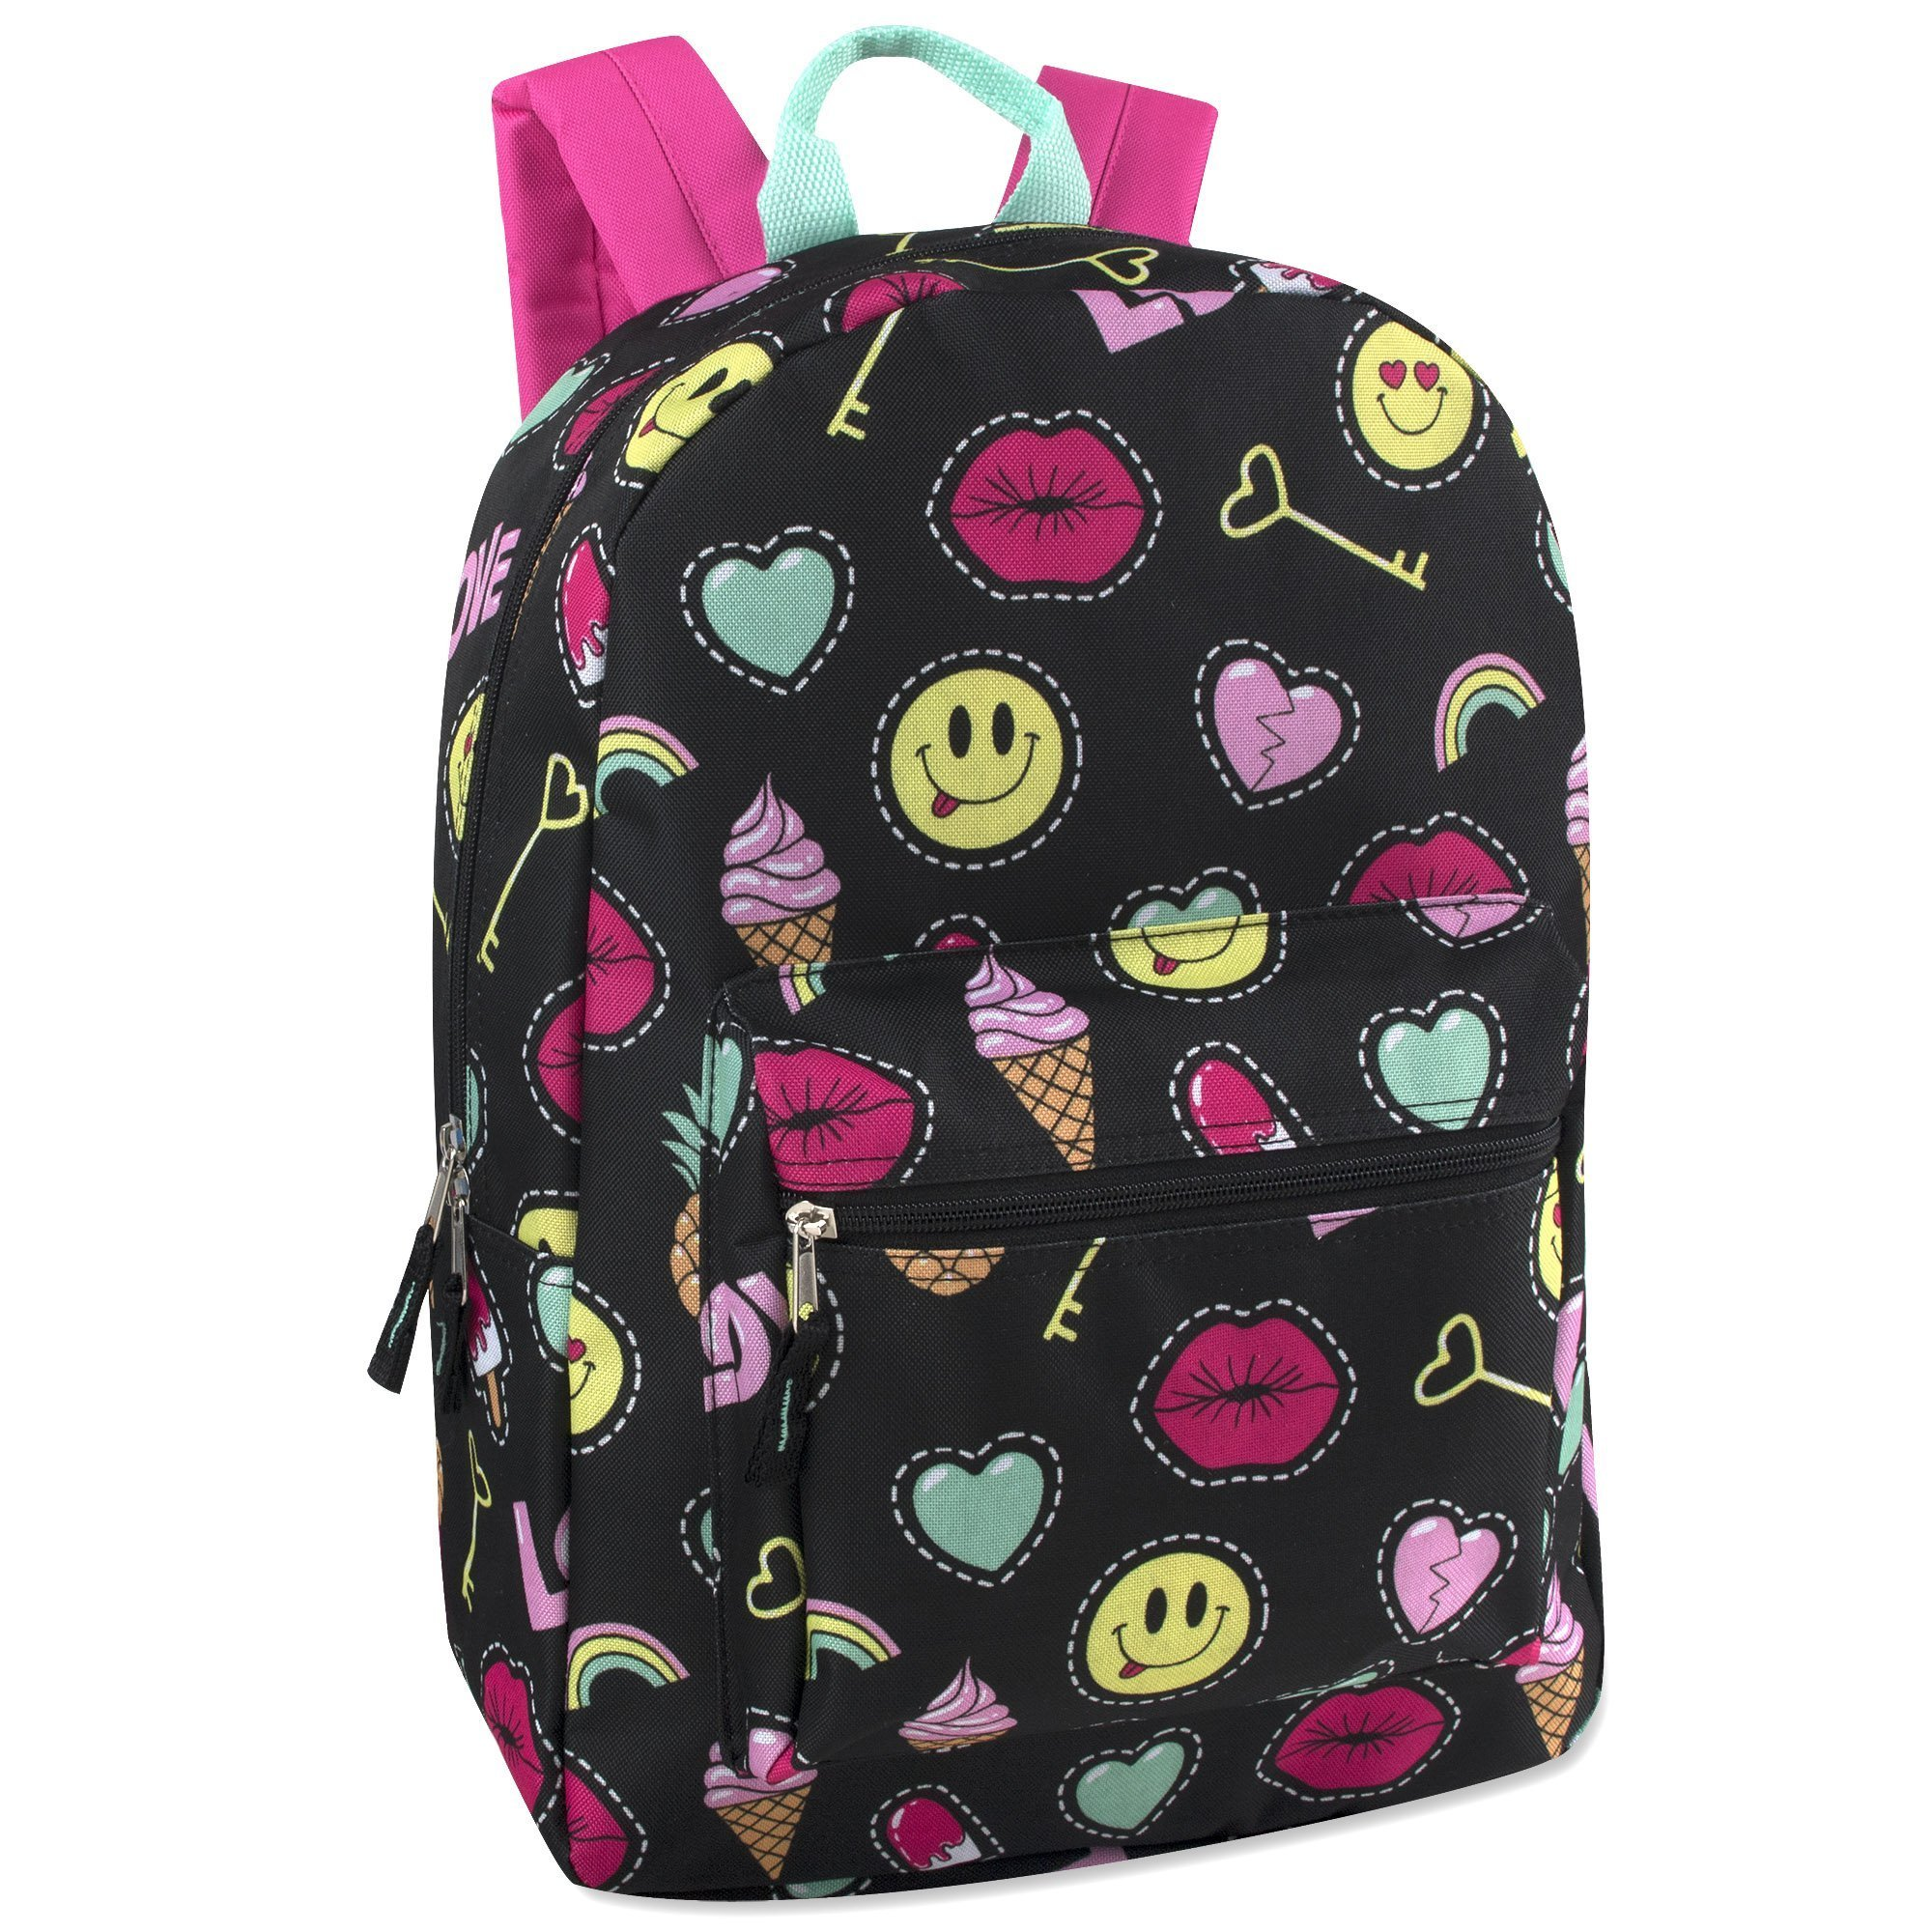 Trailmaker Girls' All Over Printed Backpack 17 Inch With Padded Straps (Emoji) by Trail maker (Image #1)